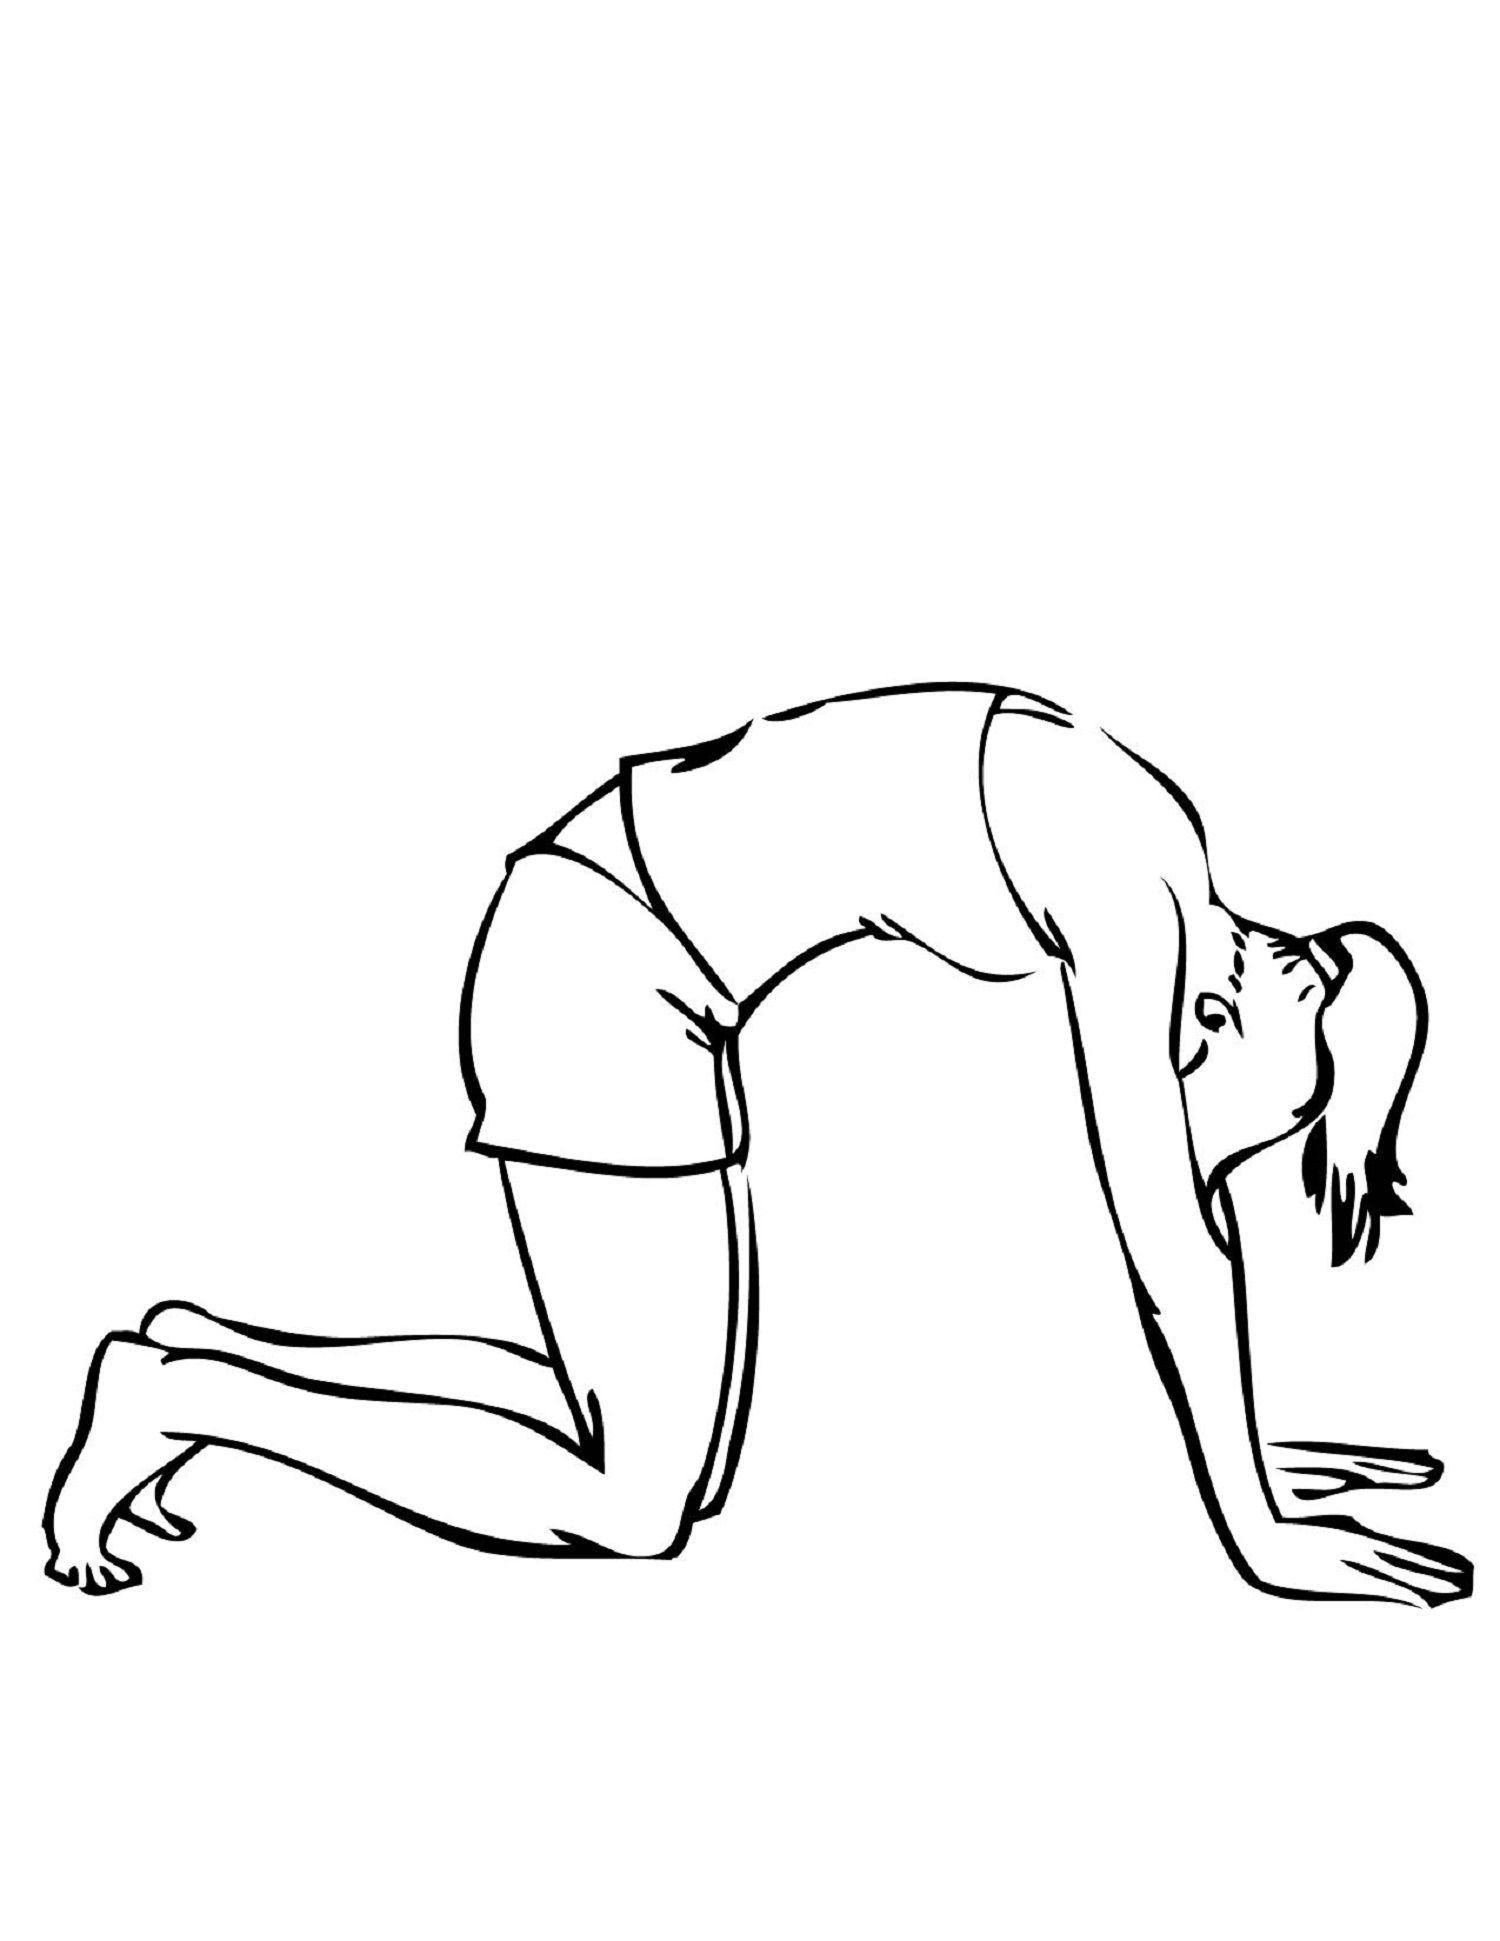 Yoga Coloring Pages For Kid Sport Introduction Yoga Coloring Book Coloring Pages For Kids Yoga For Kids [ 1941 x 1500 Pixel ]